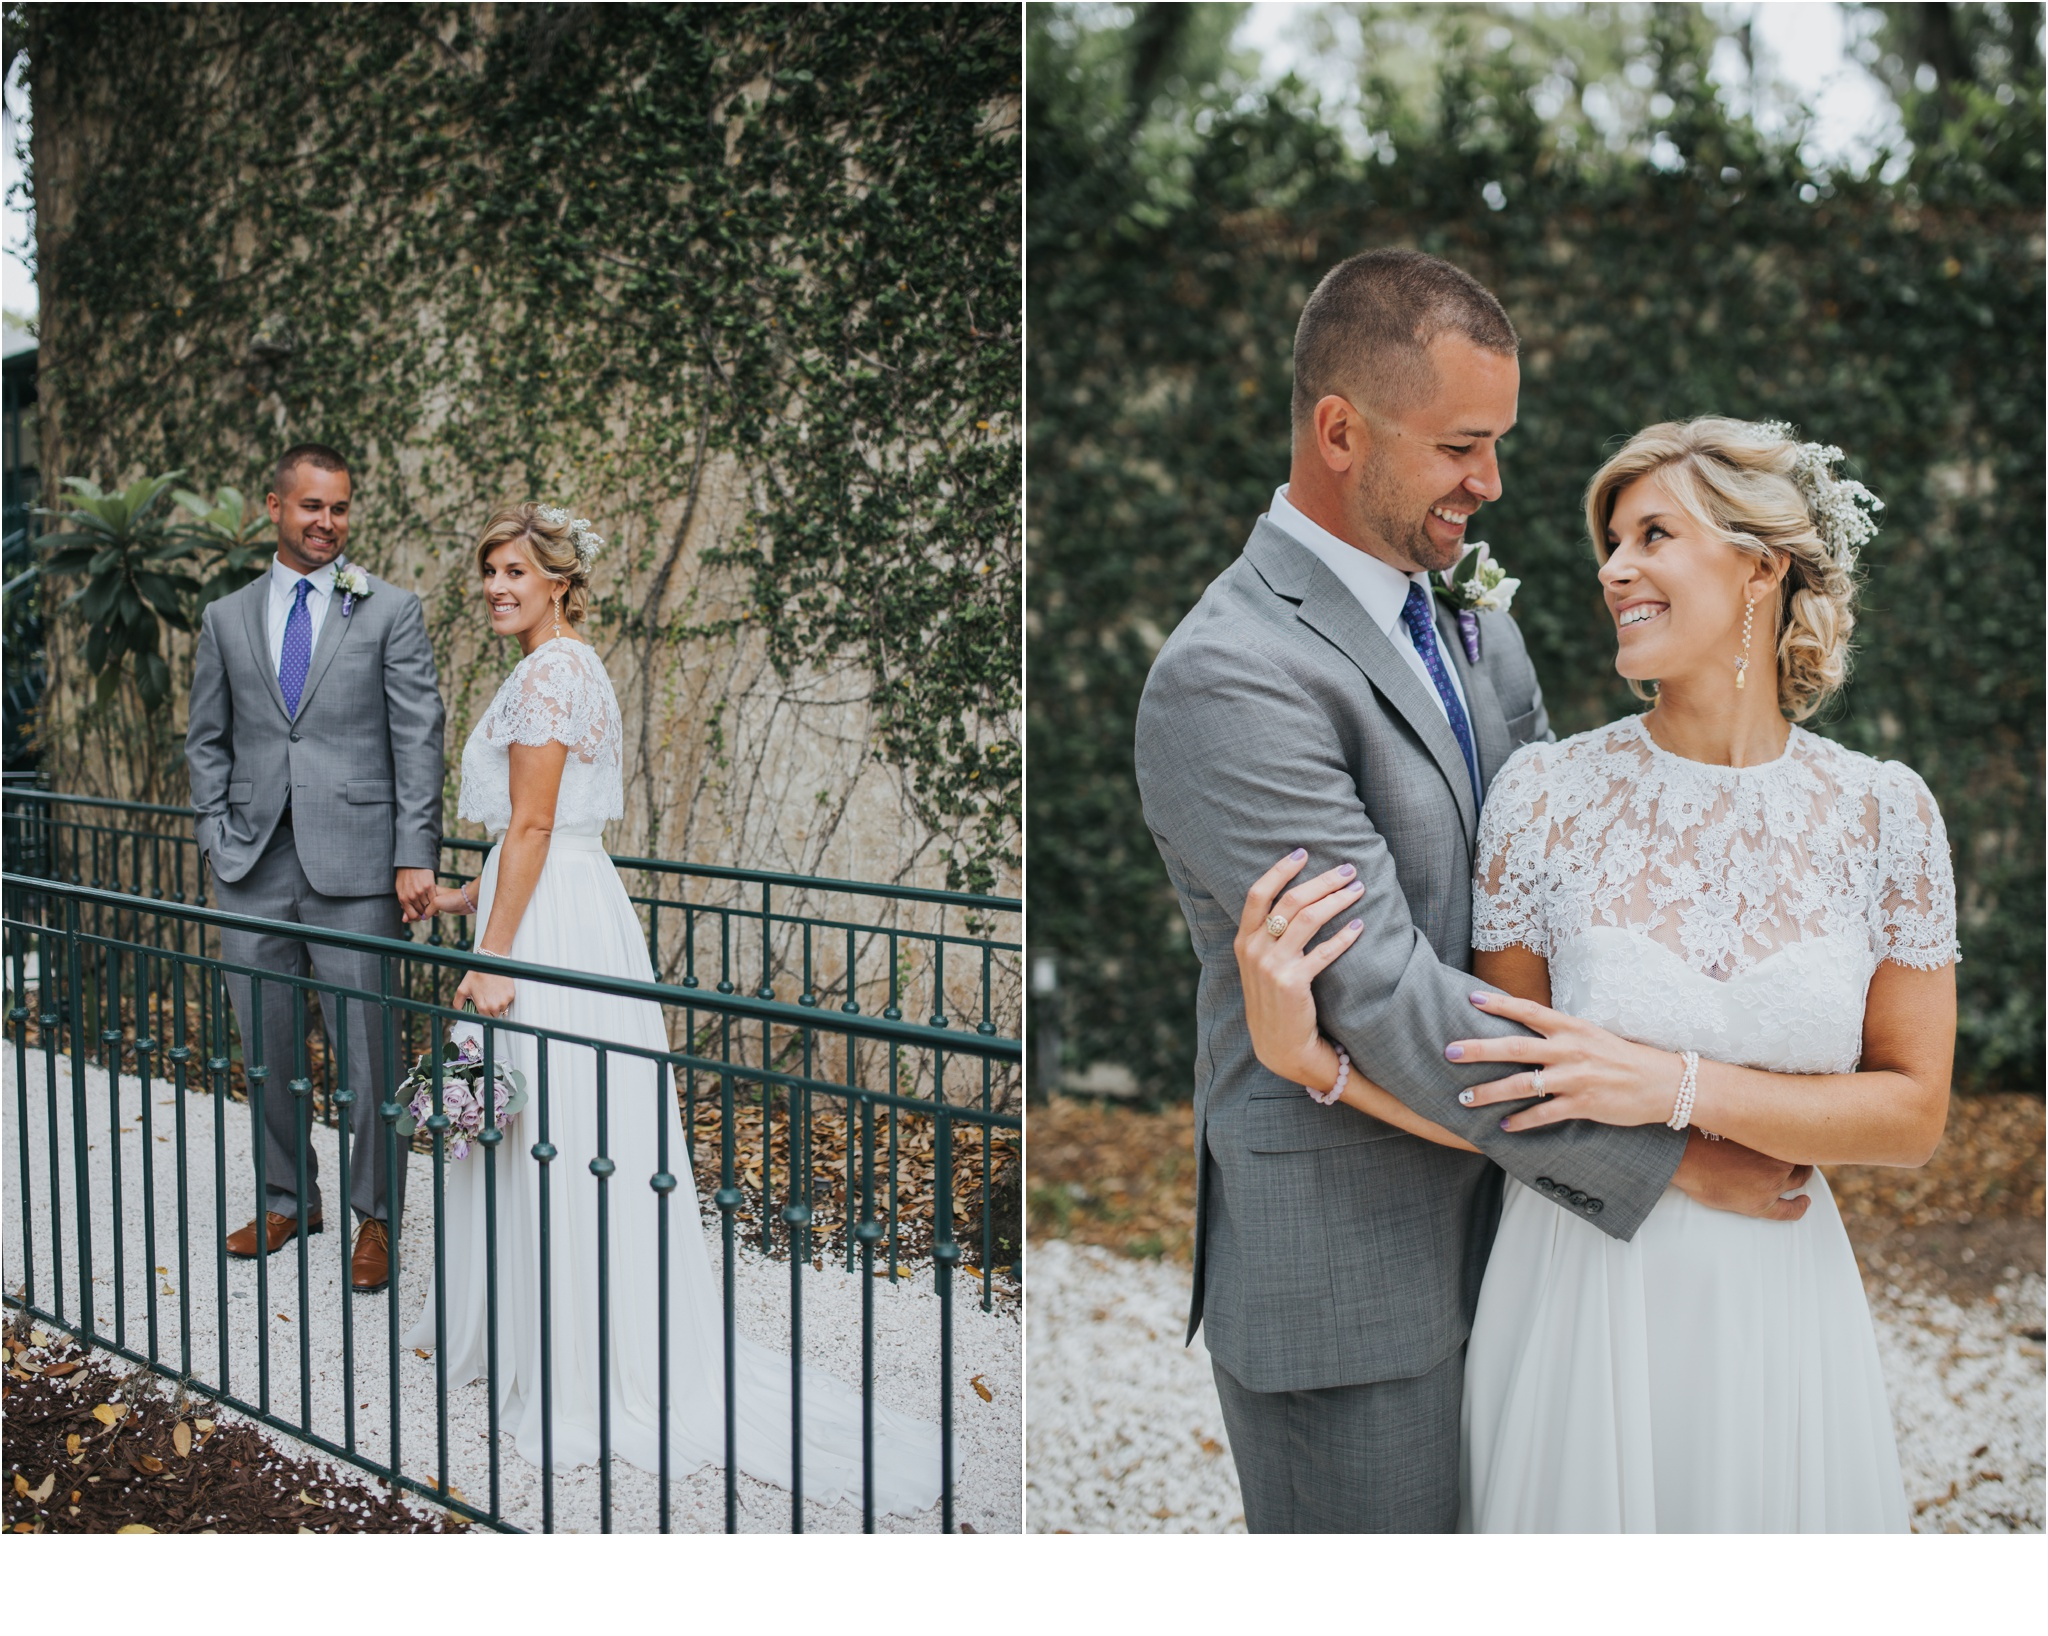 Rainey_Gregg_Photography_St._Simons_Island_Georgia_California_Wedding_Portrait_Photography_1527.jpg